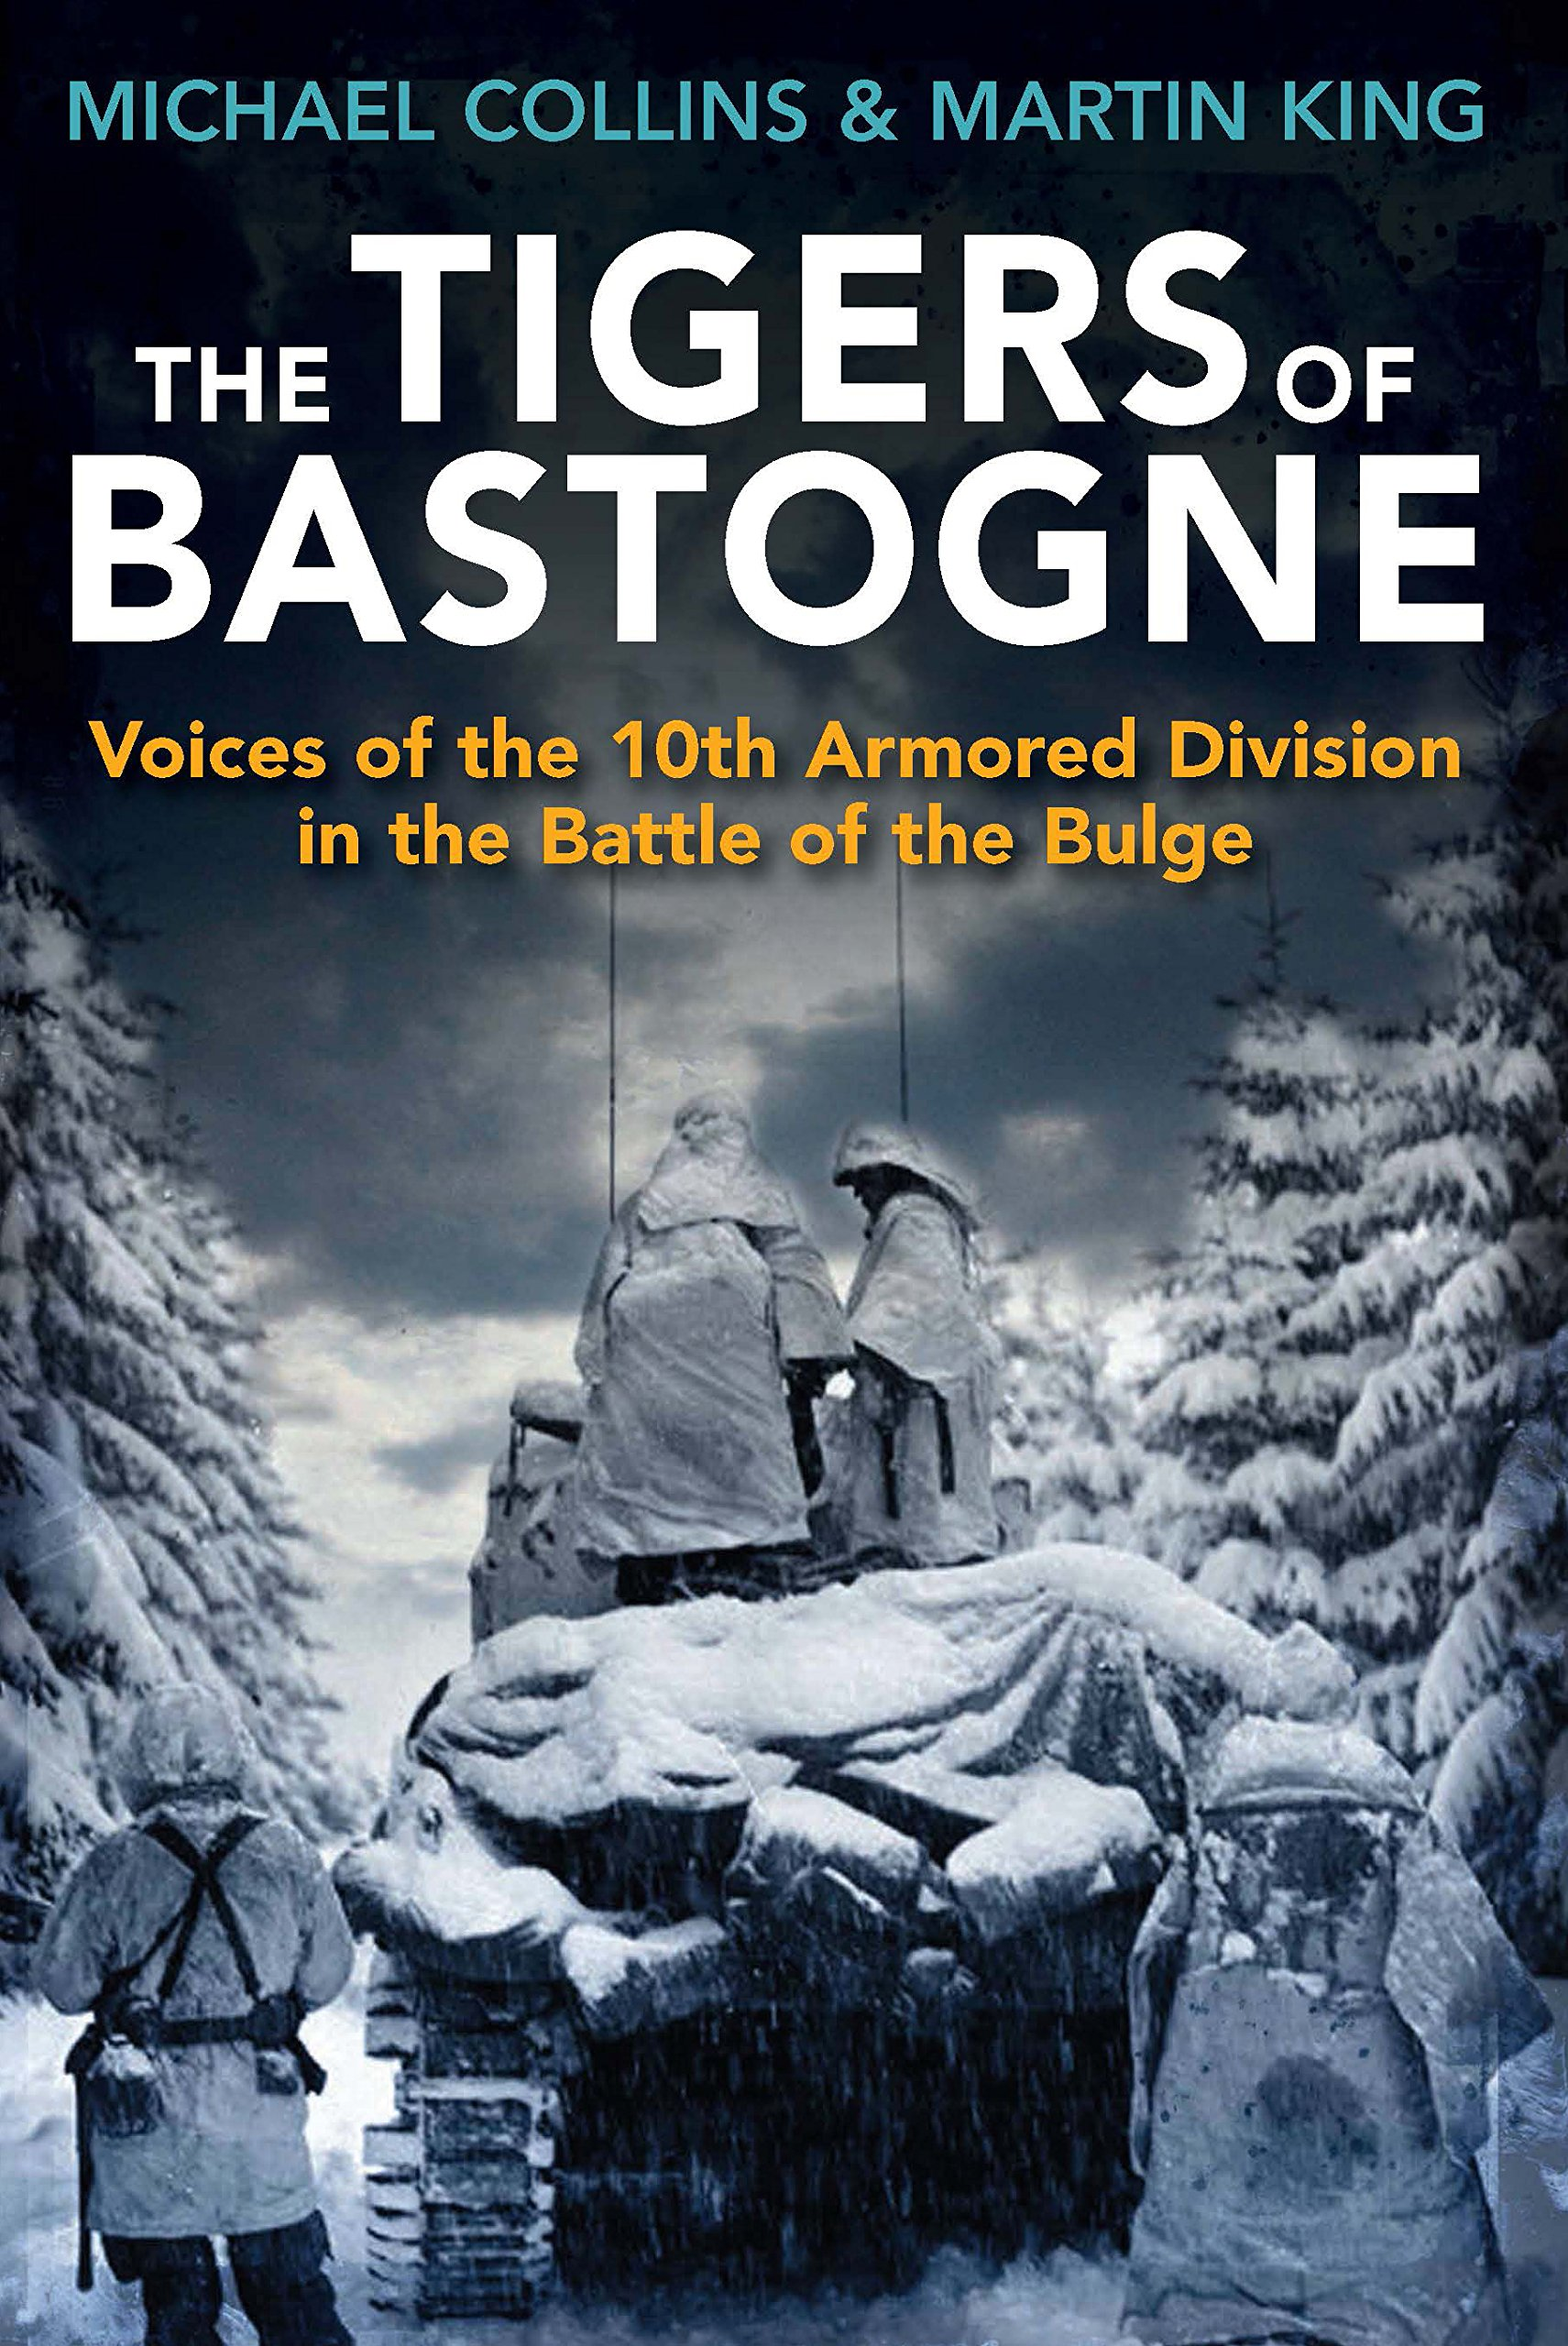 The Tigers of Bastogne: Voices of the 10th Armored Division in the